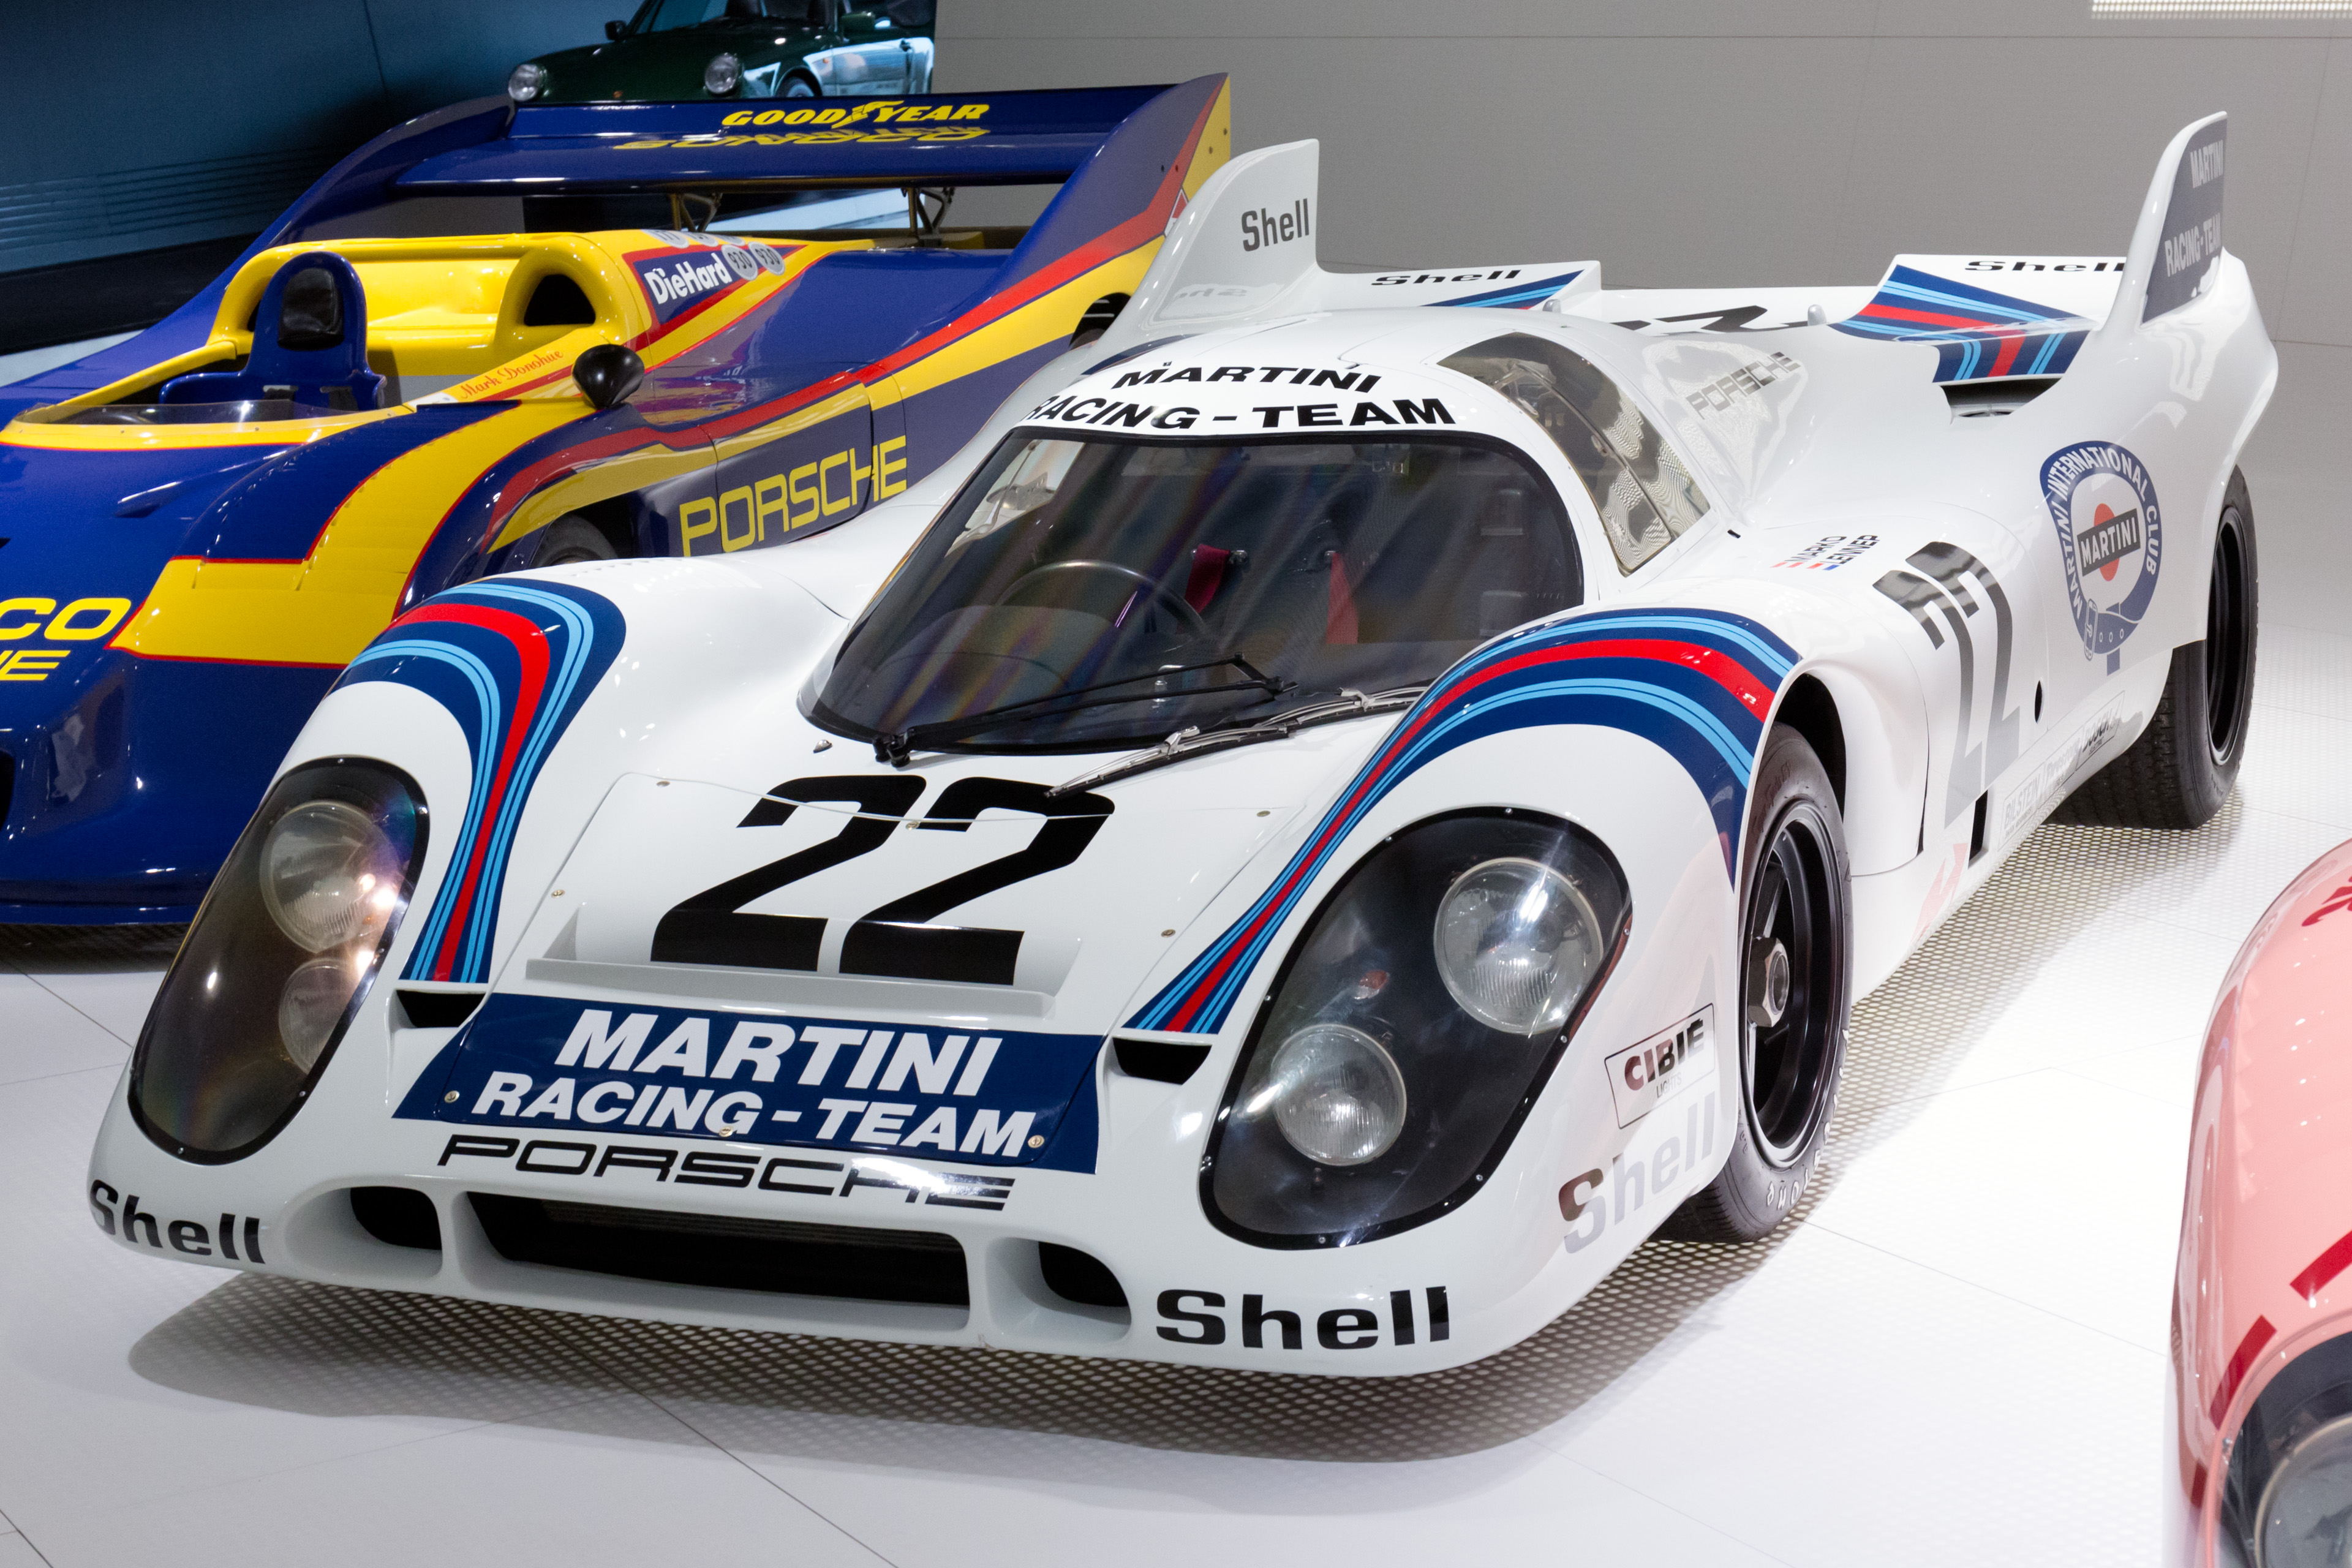 rc racing cars with File Porsche 917k  Martini  Front Left Porsche Museum on  also File Porsche 917K  Martini  front Left Porsche Museum in addition Deltas Micro Turbine Range Extender Will Make Production 2019 Model additionally File Ascona Tsagaras0001 further Img 3201.